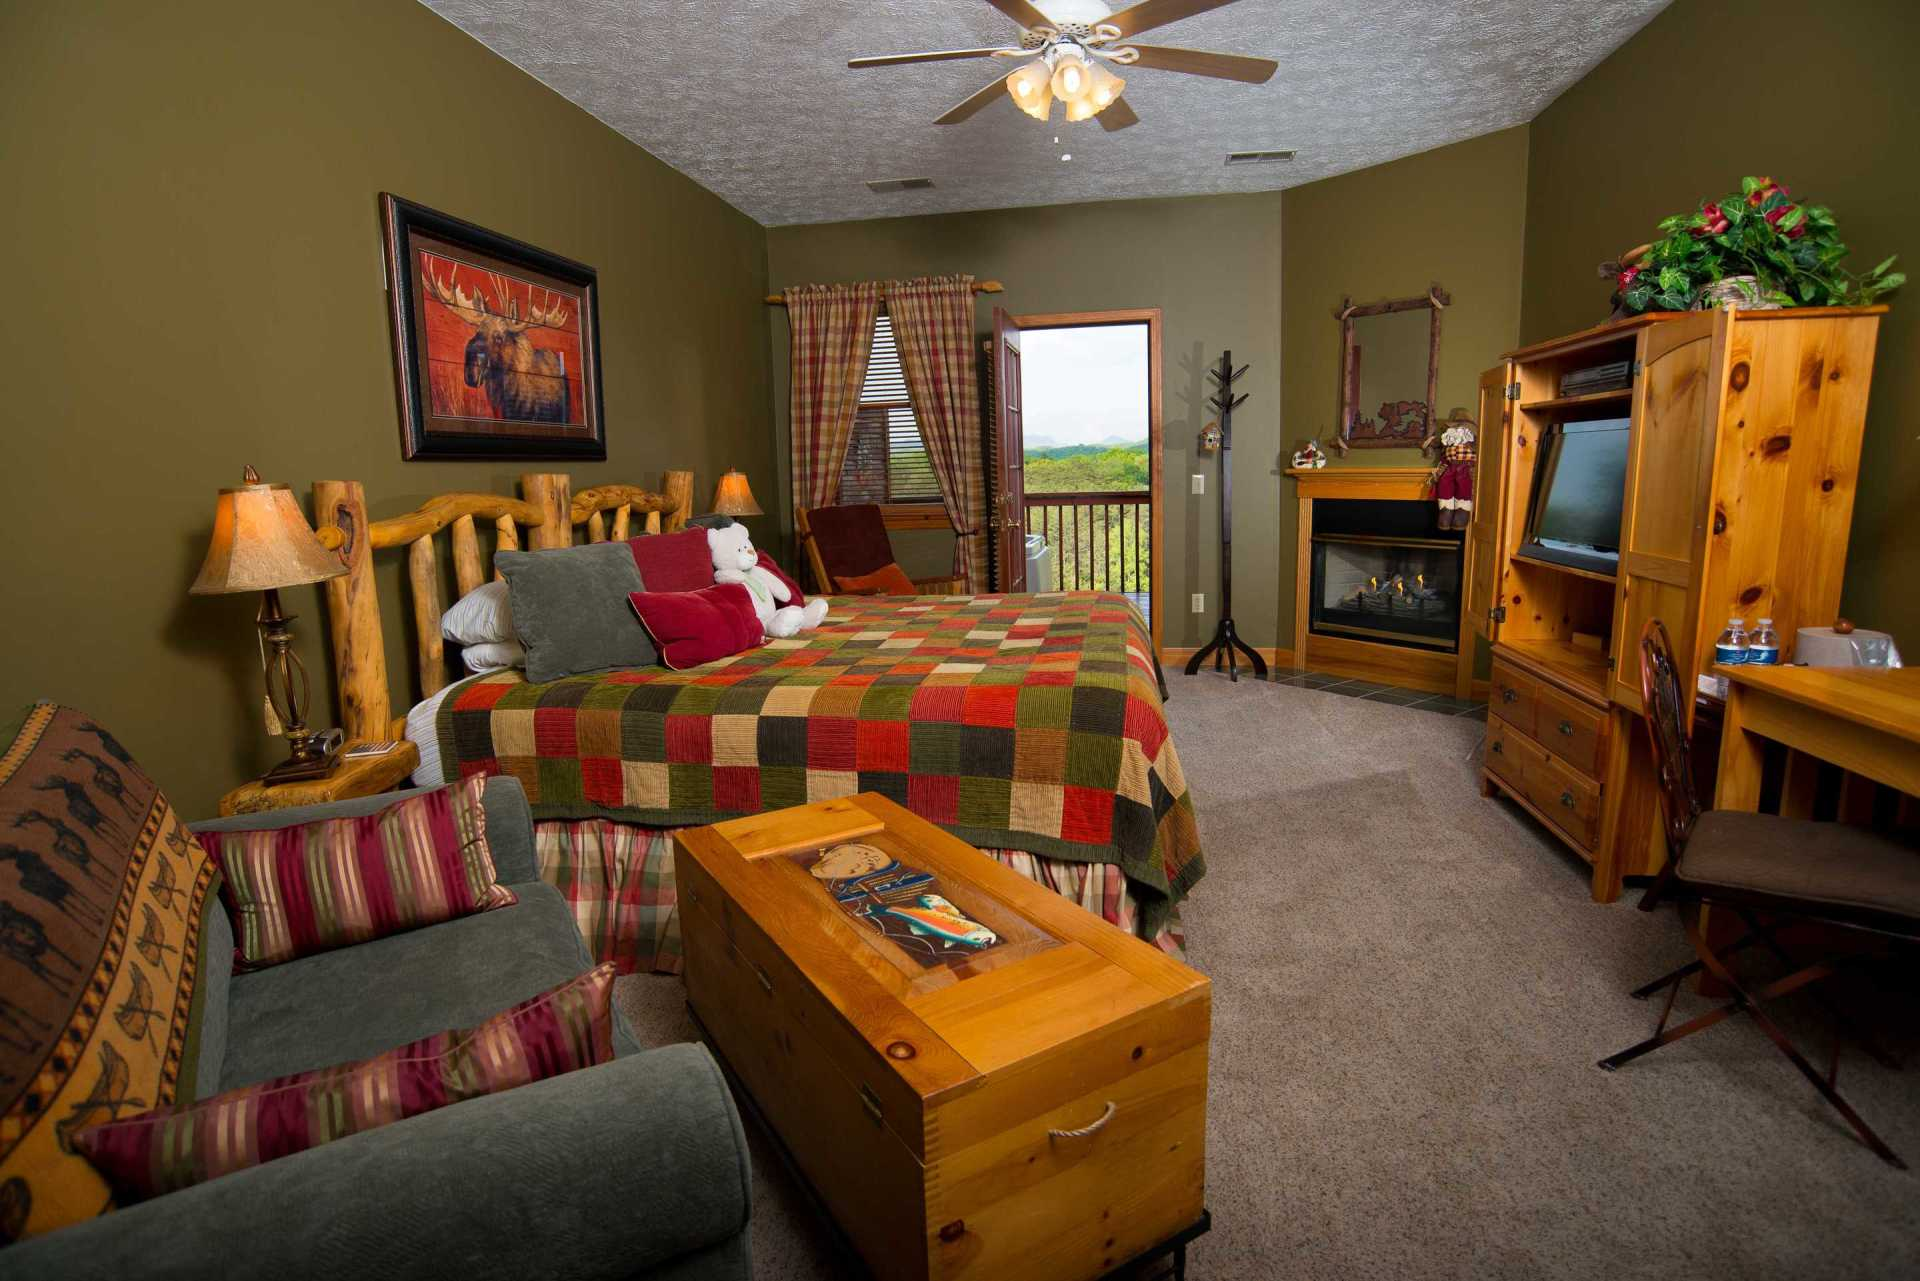 Colorado Springs Bedroom not far from Pigeon Forge